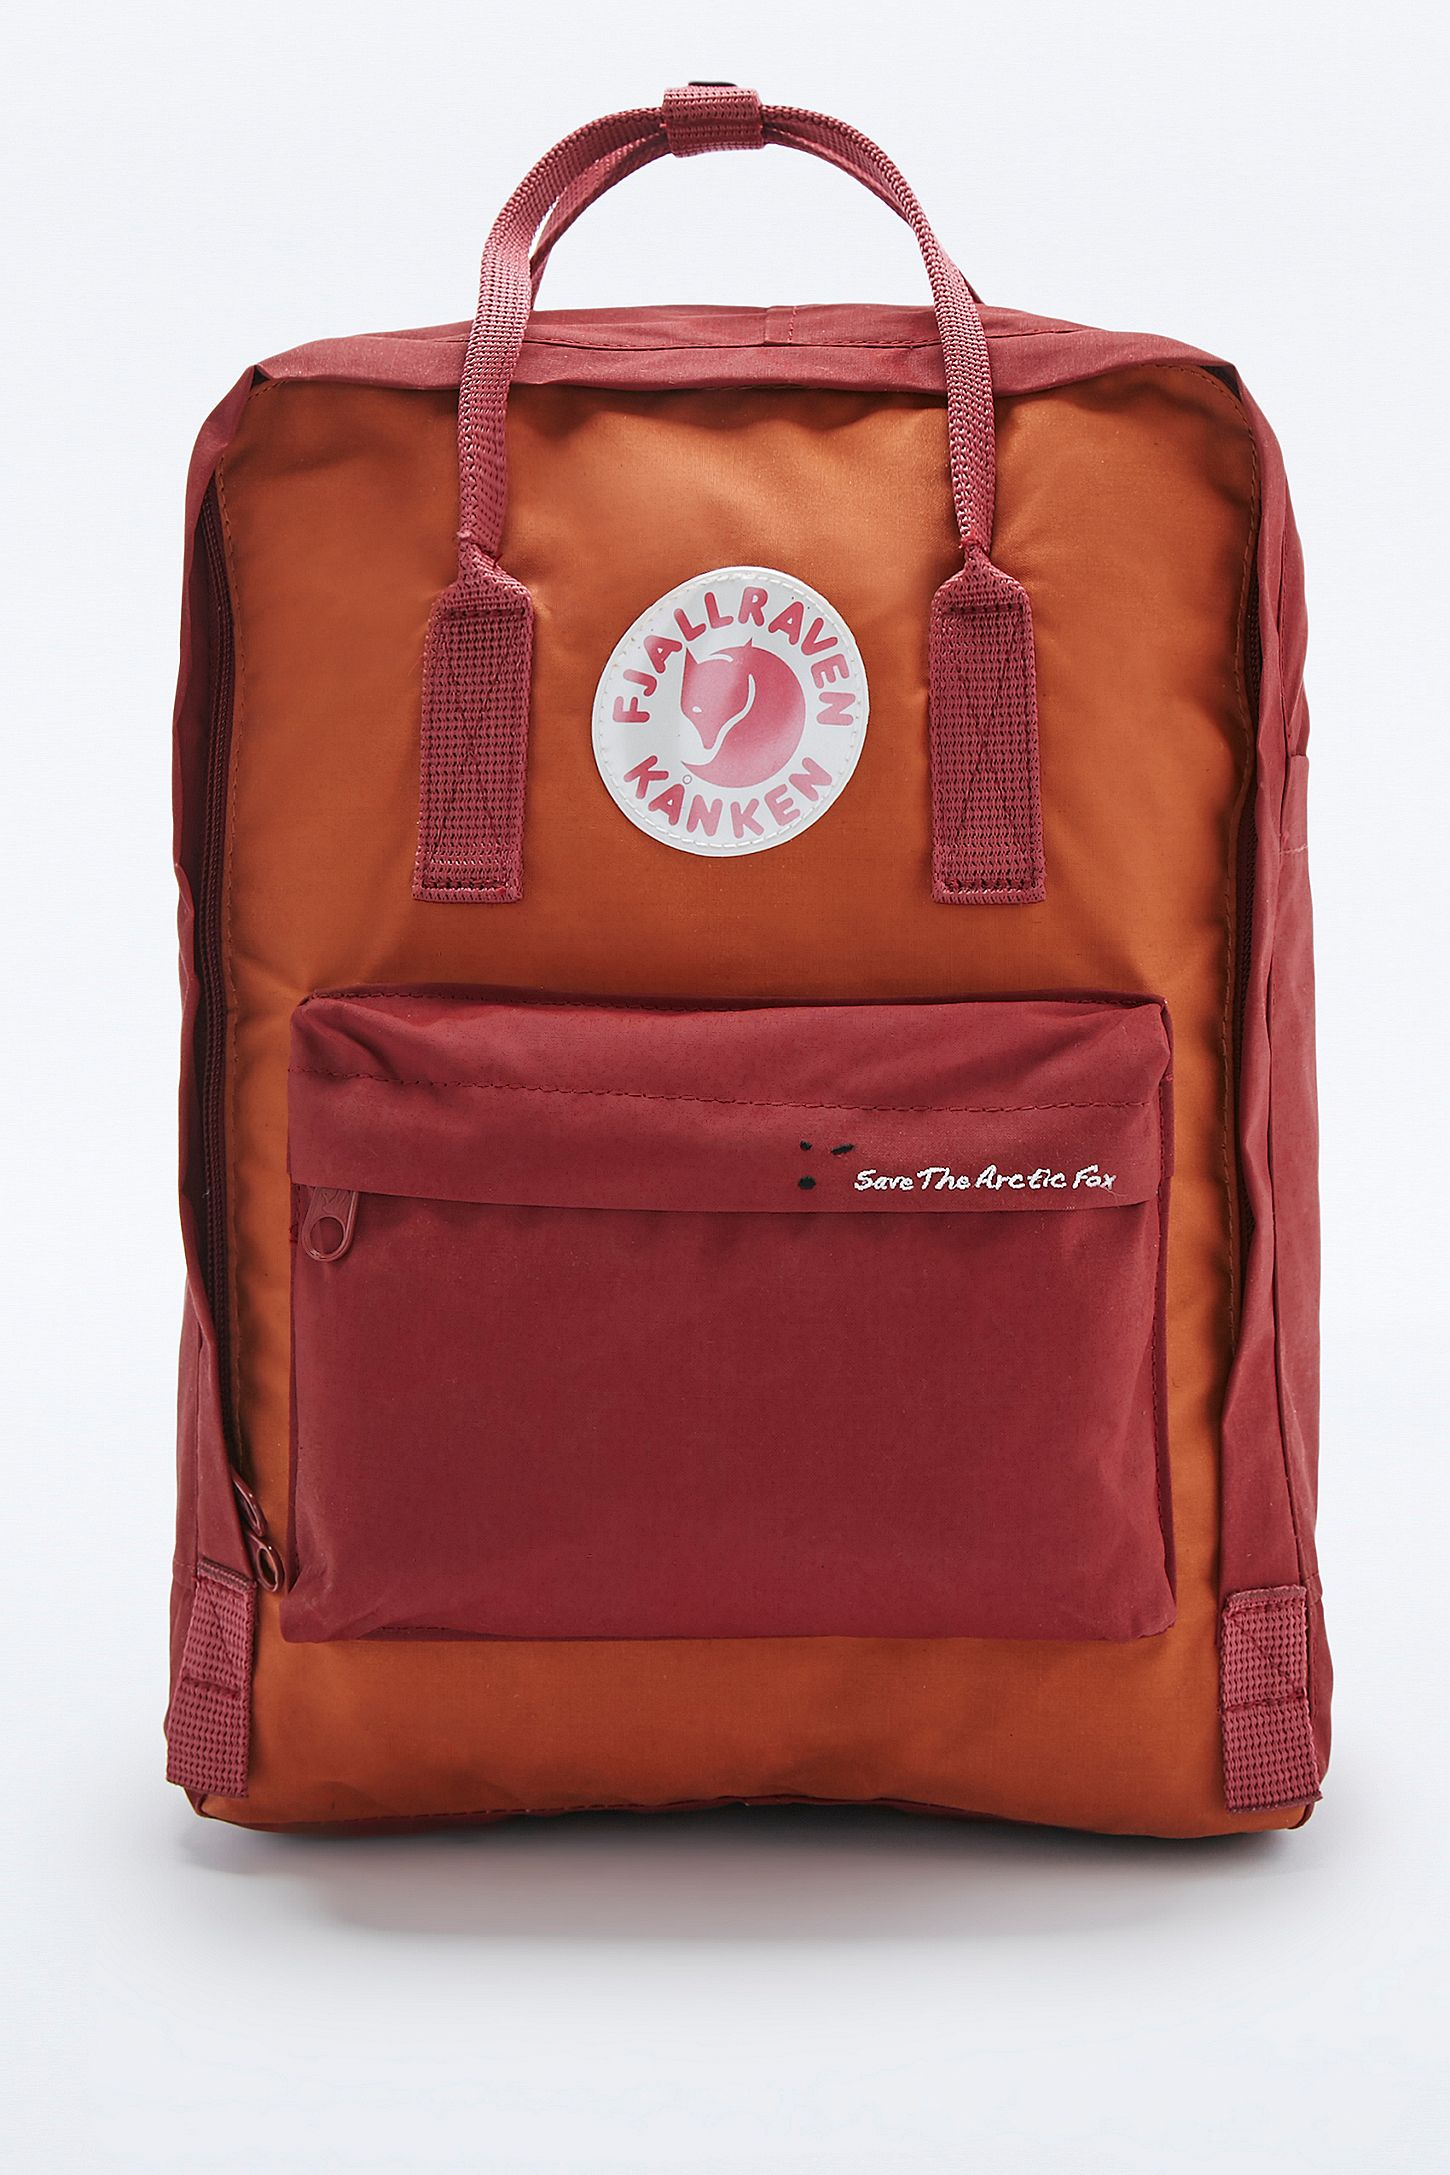 6a5935f9491 Fjallraven Kanken Classic Red Brick Save the Arctic Fox Backpack ...